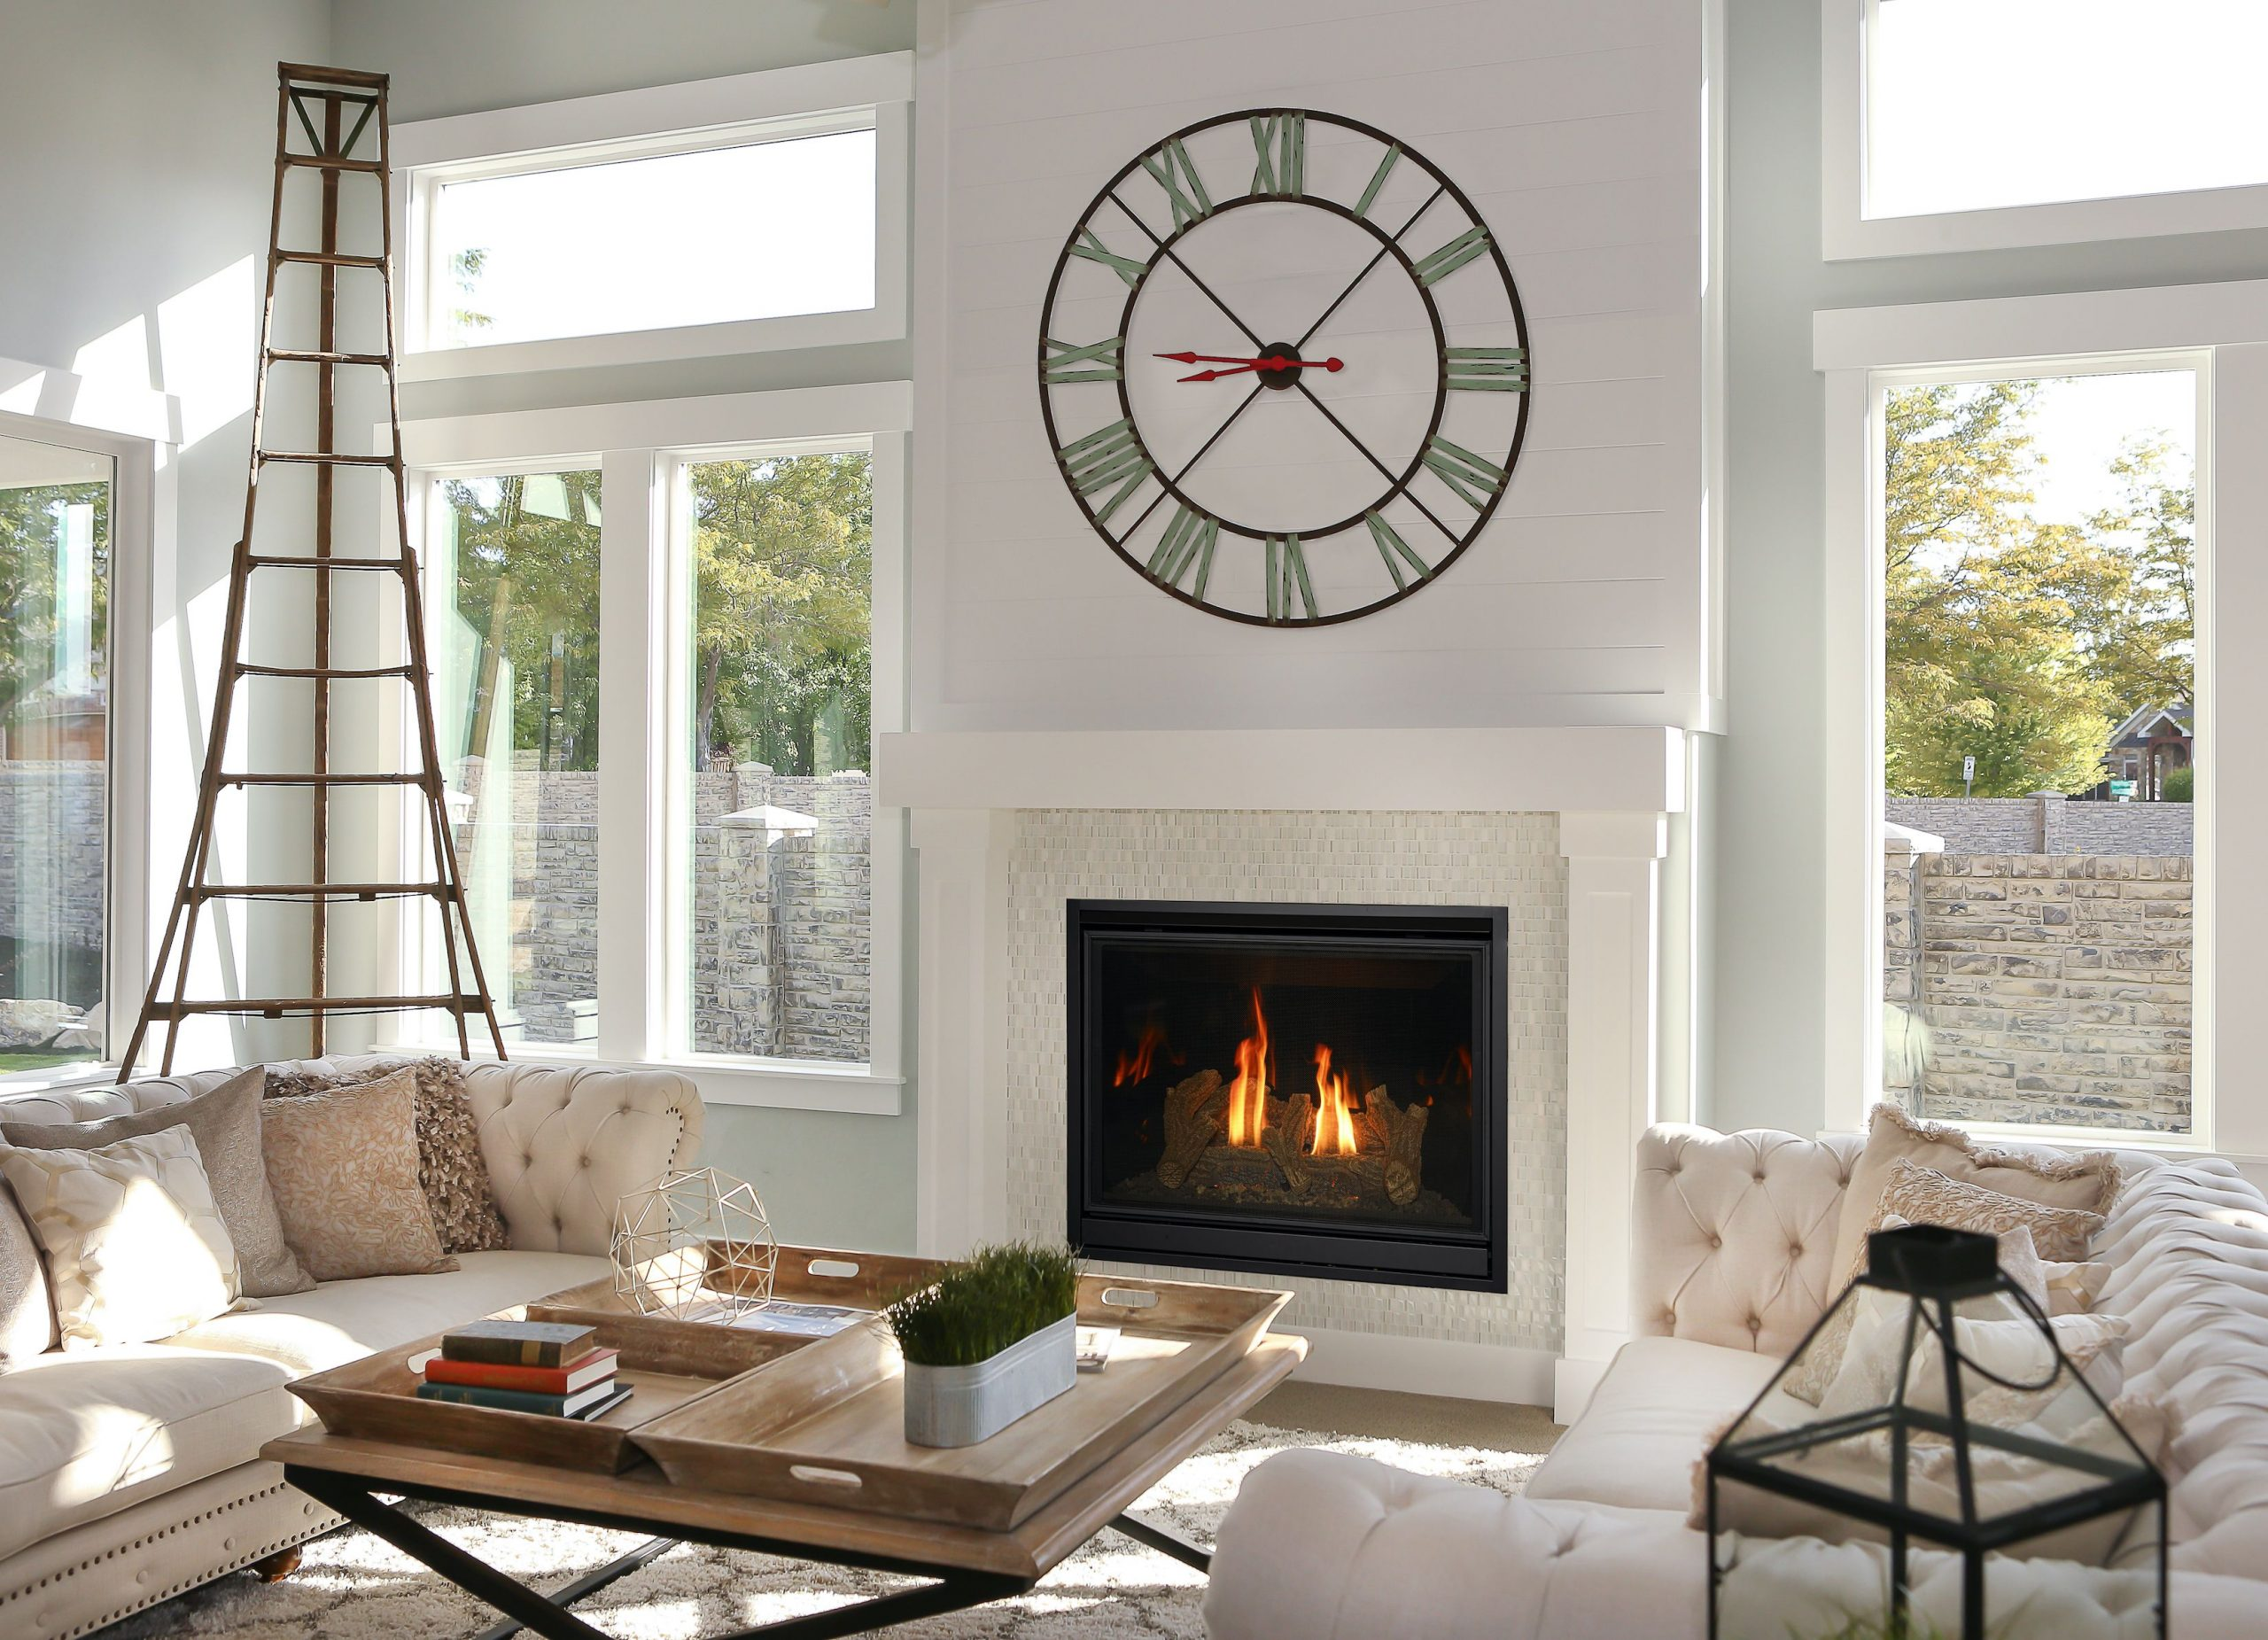 Qualities to Look for in a Dependable Fireplace Dealer